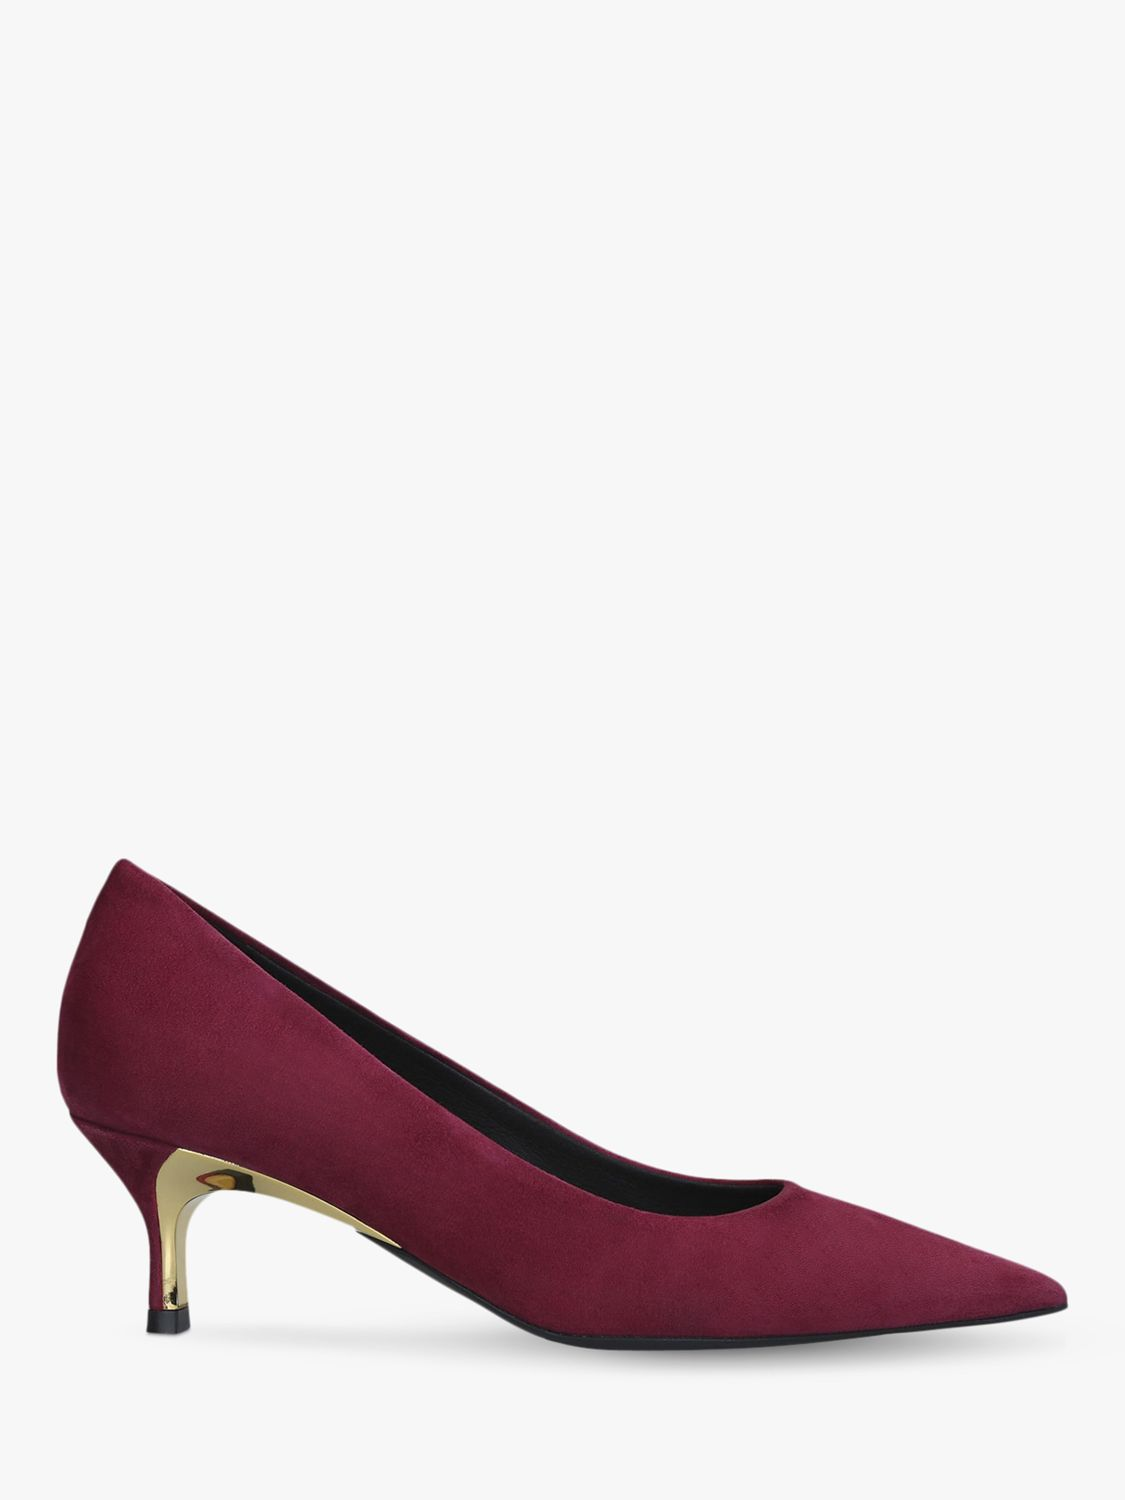 Furla Furla Eva Decollete Stiletto Heel Court Shoes